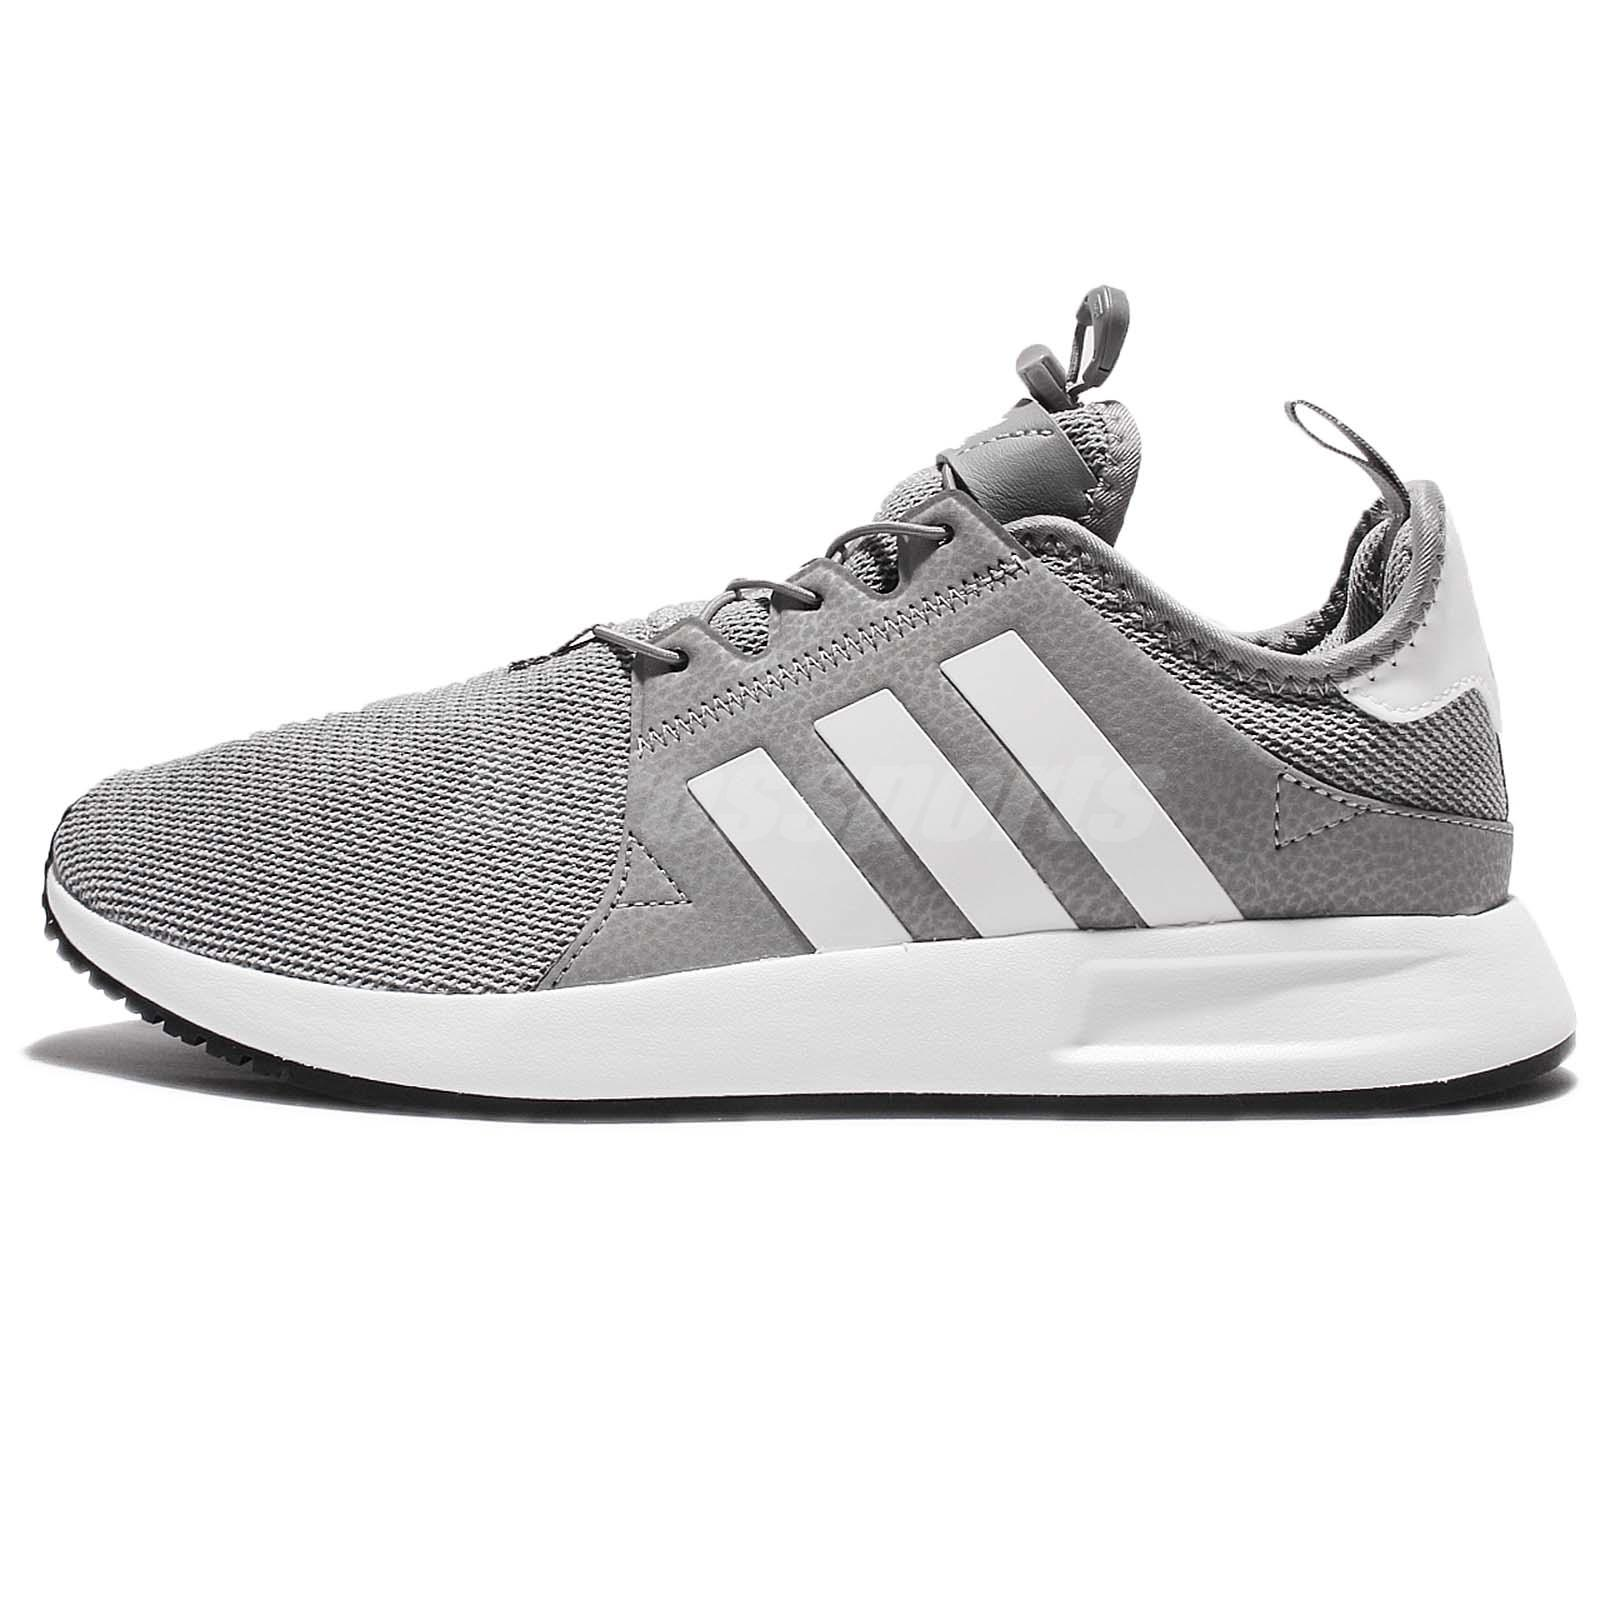 adidas x plr grey white reflective men running shoes. Black Bedroom Furniture Sets. Home Design Ideas